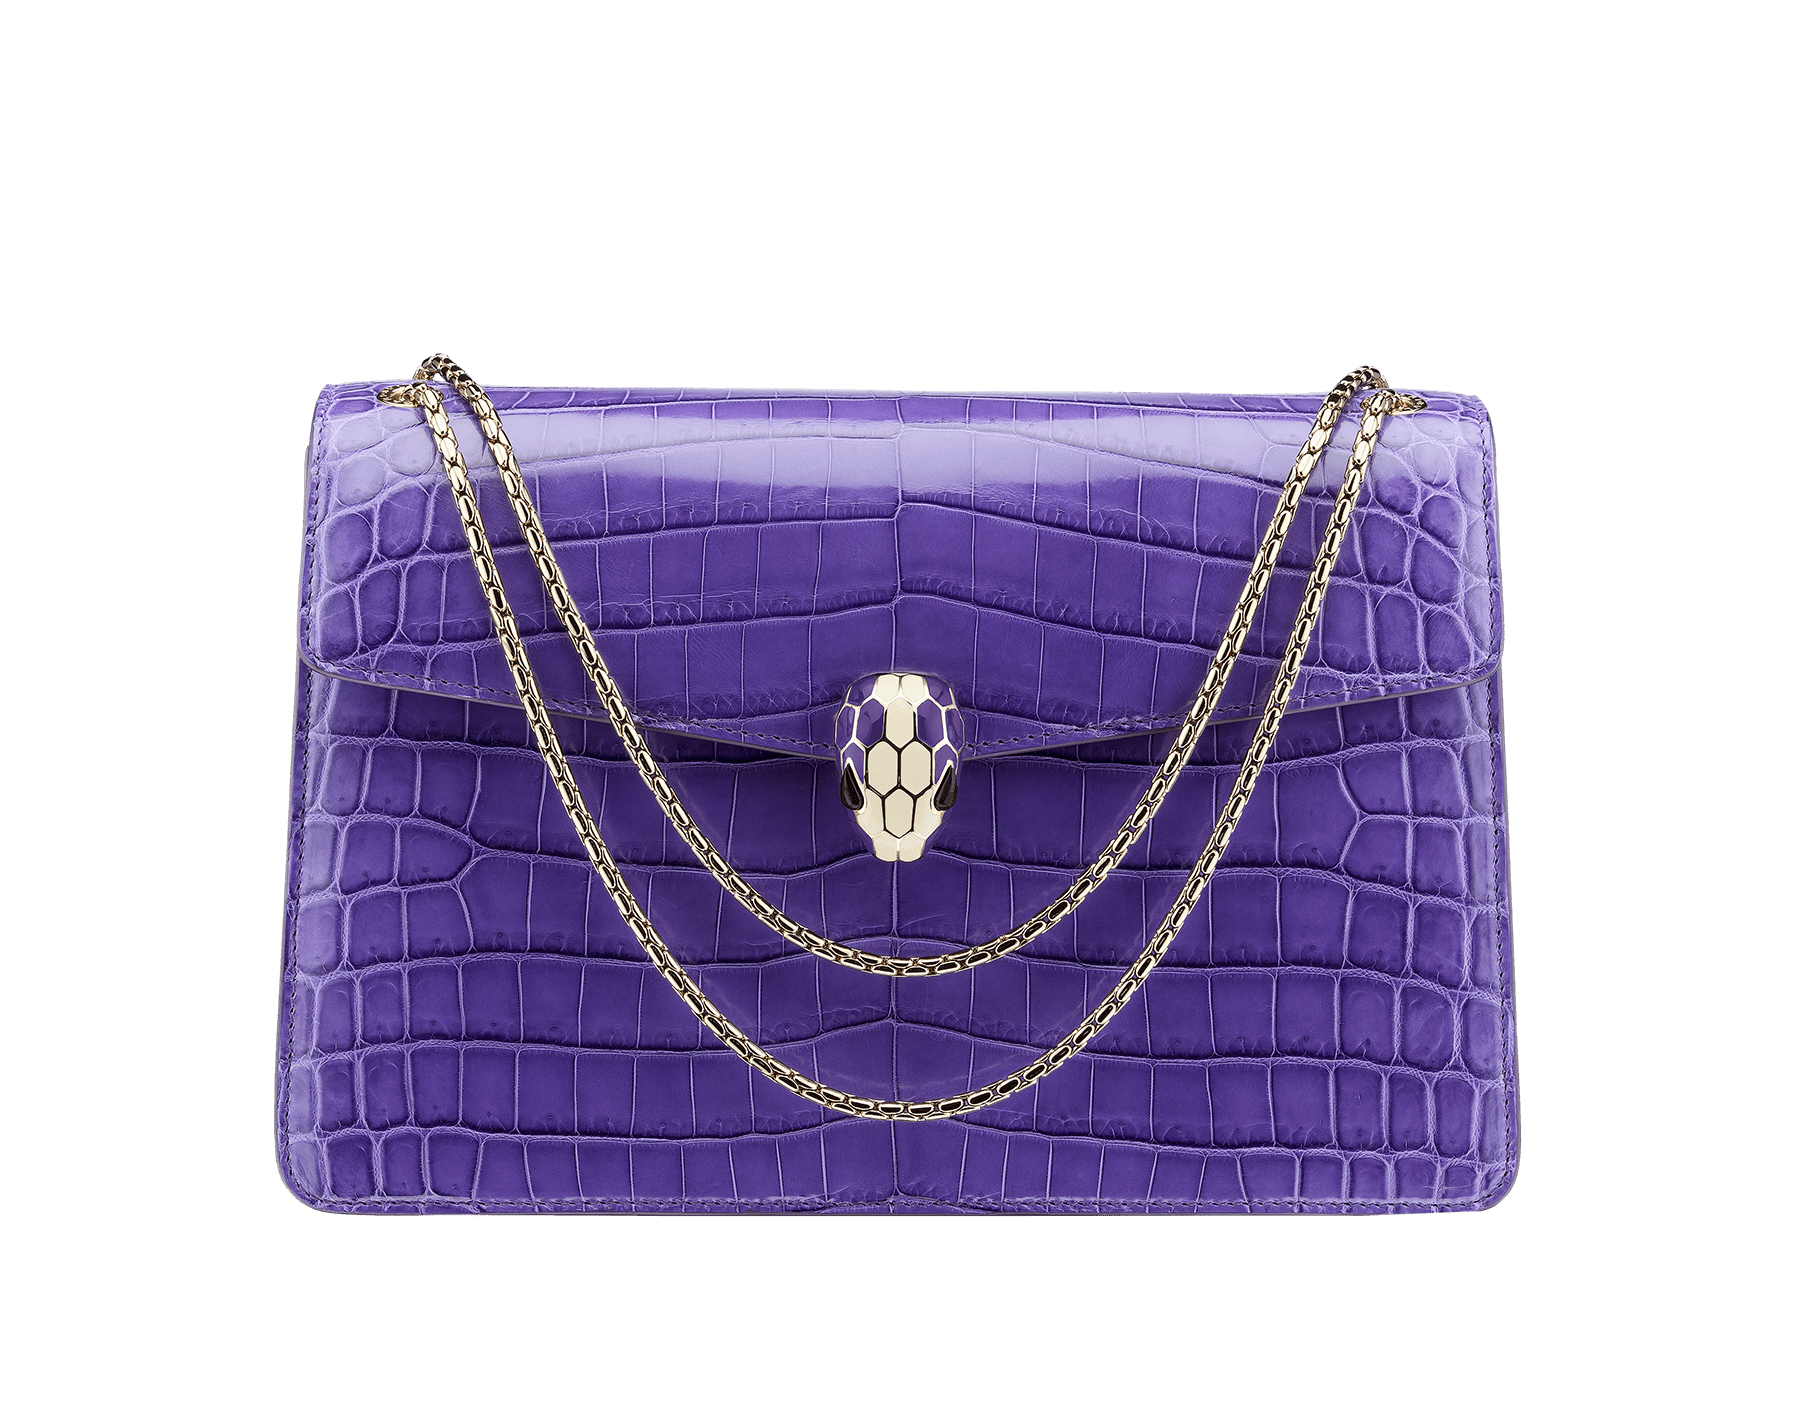 Flap cover bag Serpenti Forever in violet amethyst shiny crocodile skin with brass light gold plated Serpenti head closure in white and violet amethyst enamel with eyes in black onyx. Small size with two gussets, various internal pockets and snake body-shaped chain. Internal metal tag featuring the Bulgari logo, and pocket mirror. Also available in other colours. 28 x 19 x 7,5 cm. - 11 x 7.5 x 2.9 521-CRa image 1